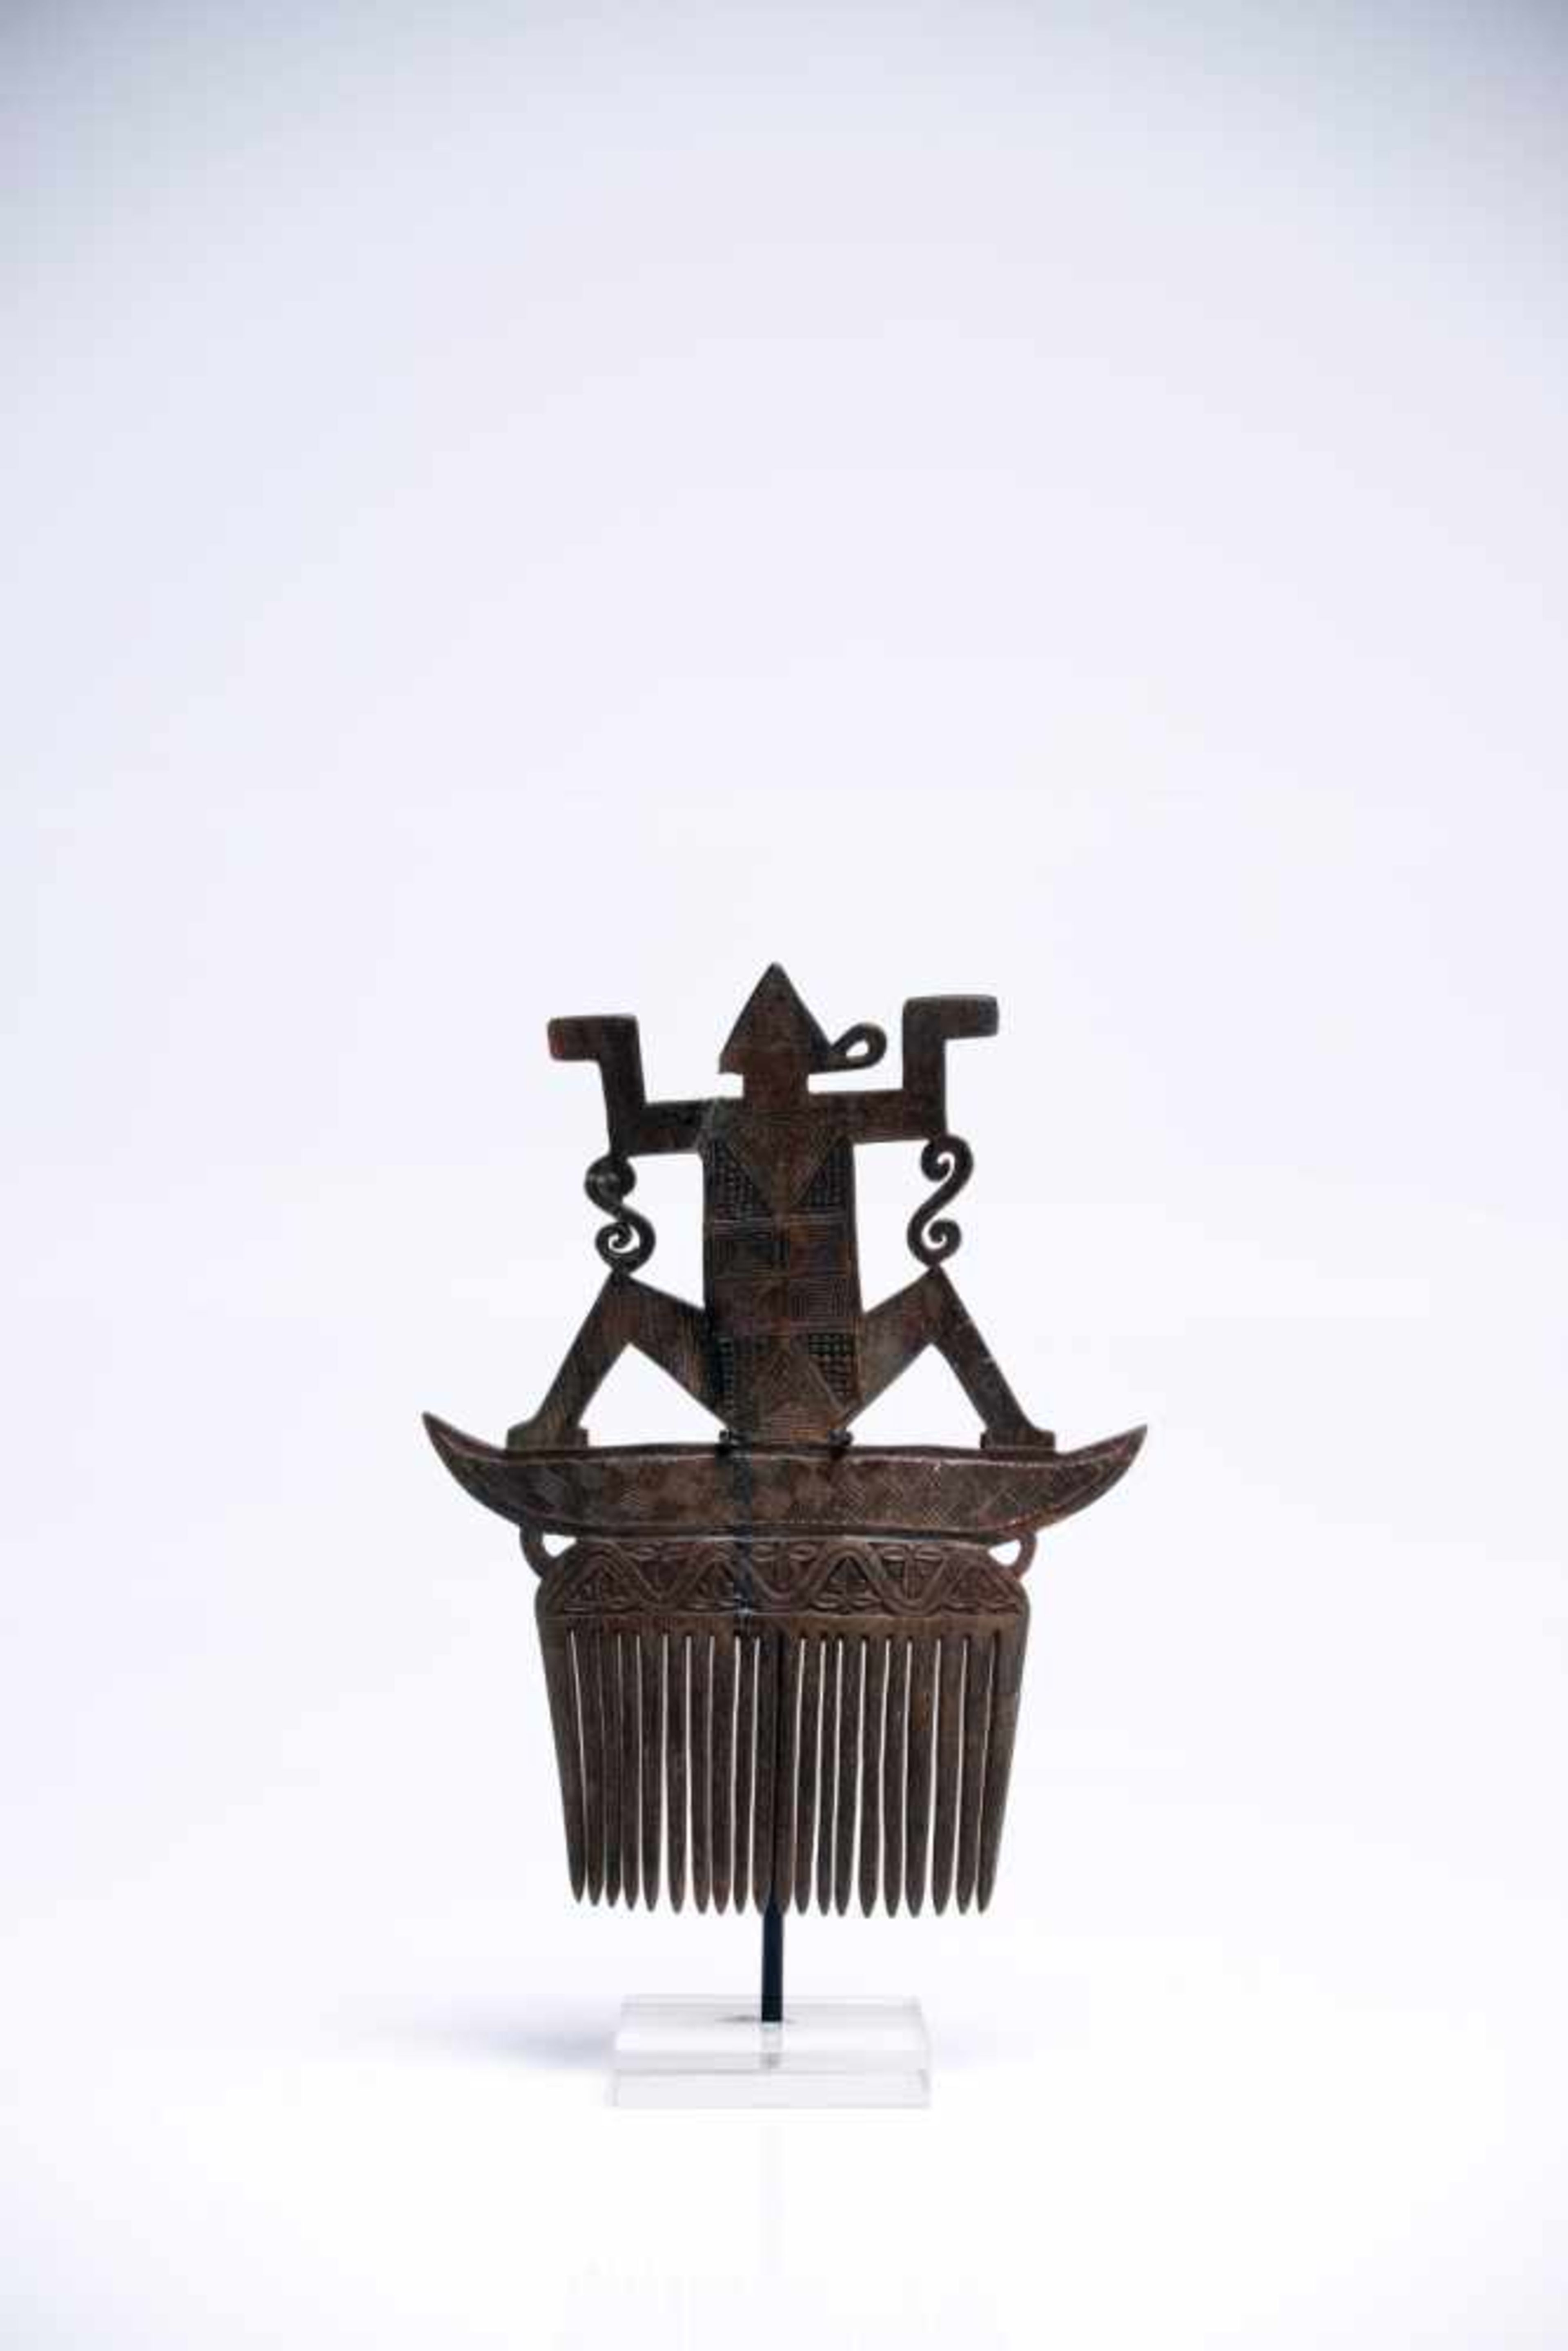 Lot 23 - Hair CombHornIndonesia19th ctH: 13 cmDelicately engraved hair comb. A human-like figure is sitting